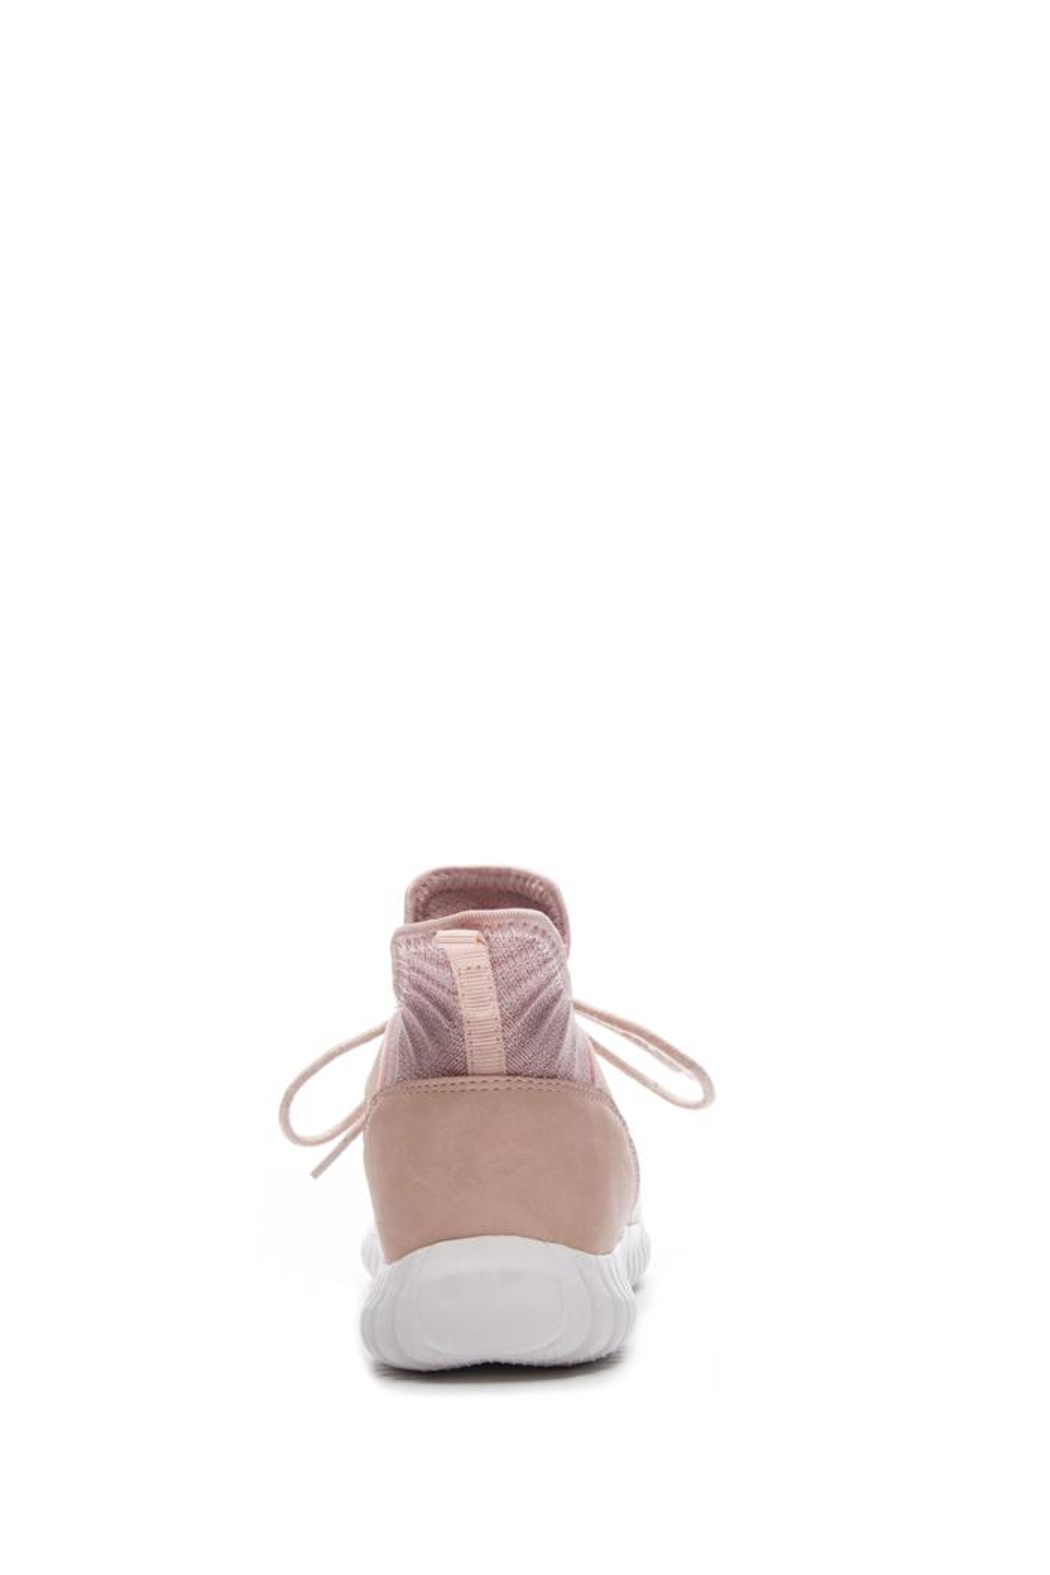 Dirty Laundry Harlen Blush Sneaker - Back Cropped Image